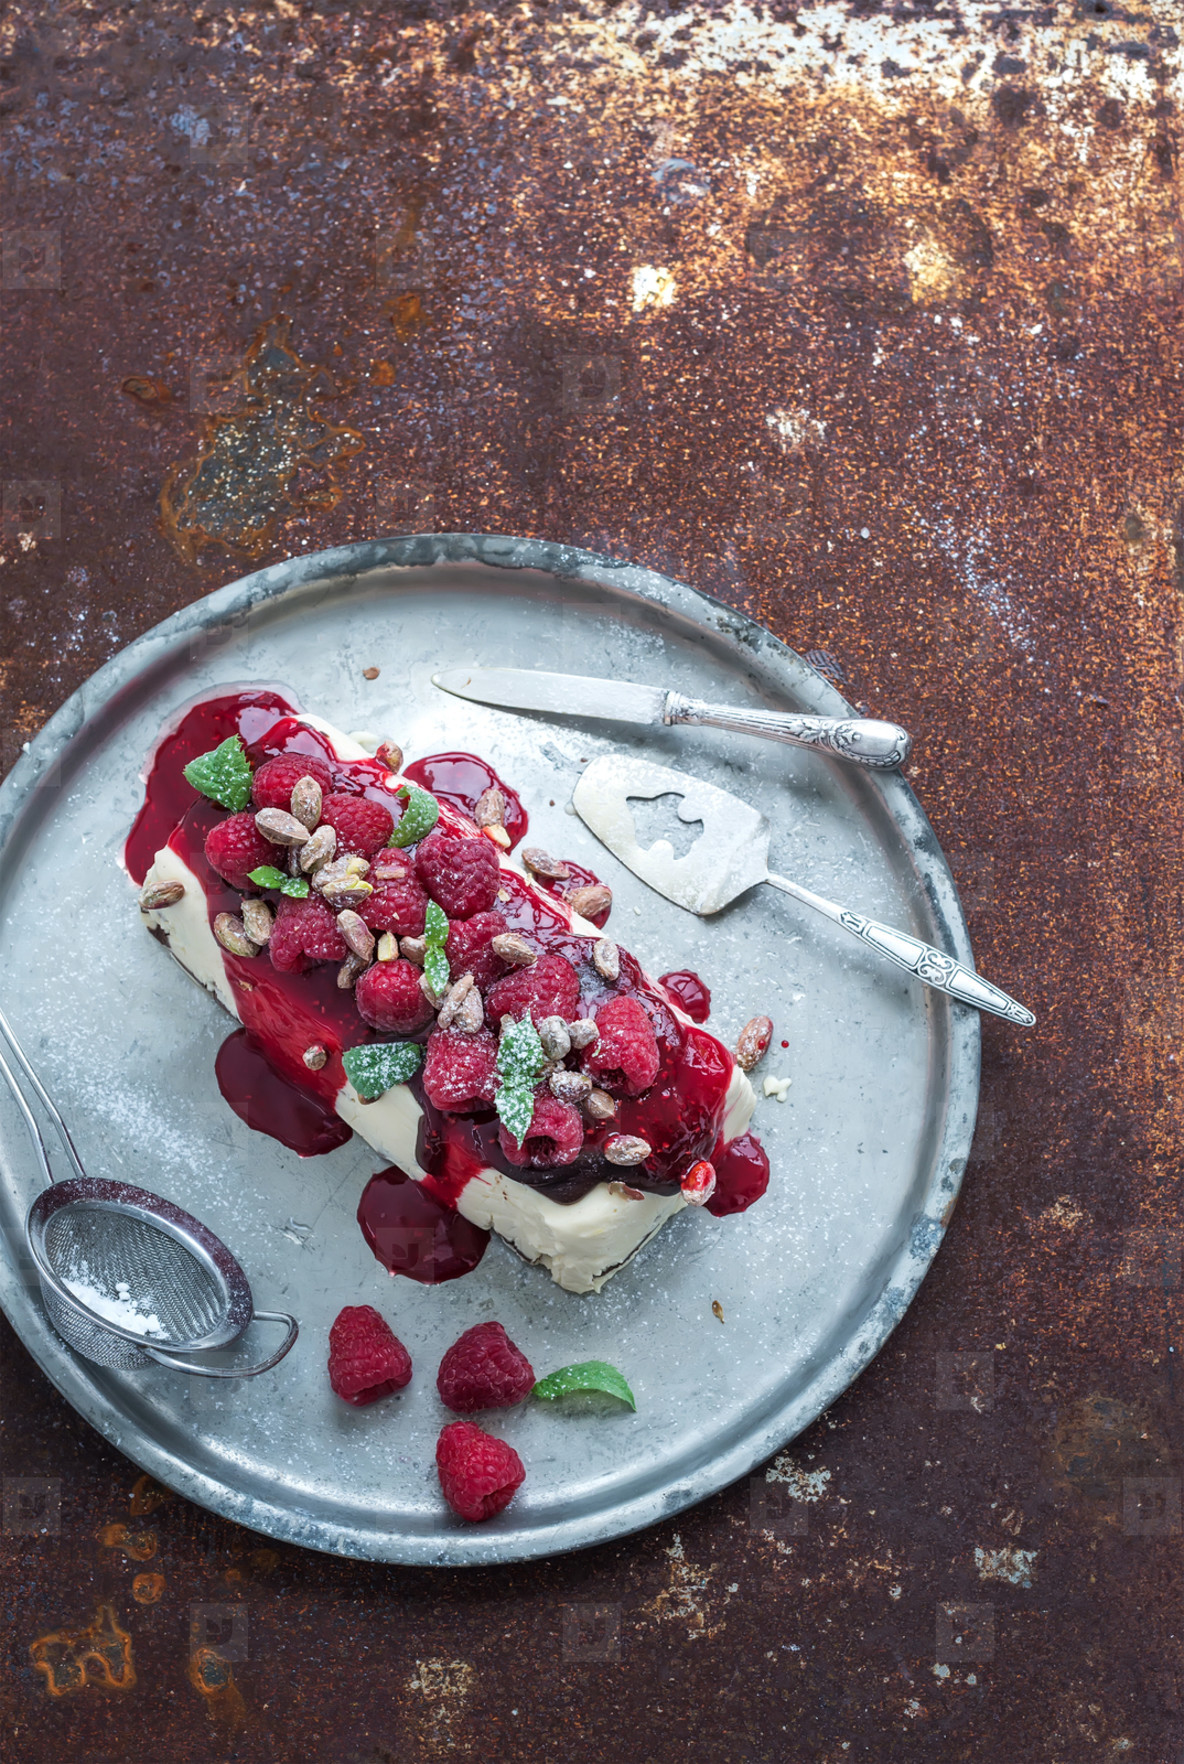 Semifreddo or italian cheese ice cream dessert with pistachios  fresh raspberries and mint on vintage silver tray over rusty grunge metal background  top view